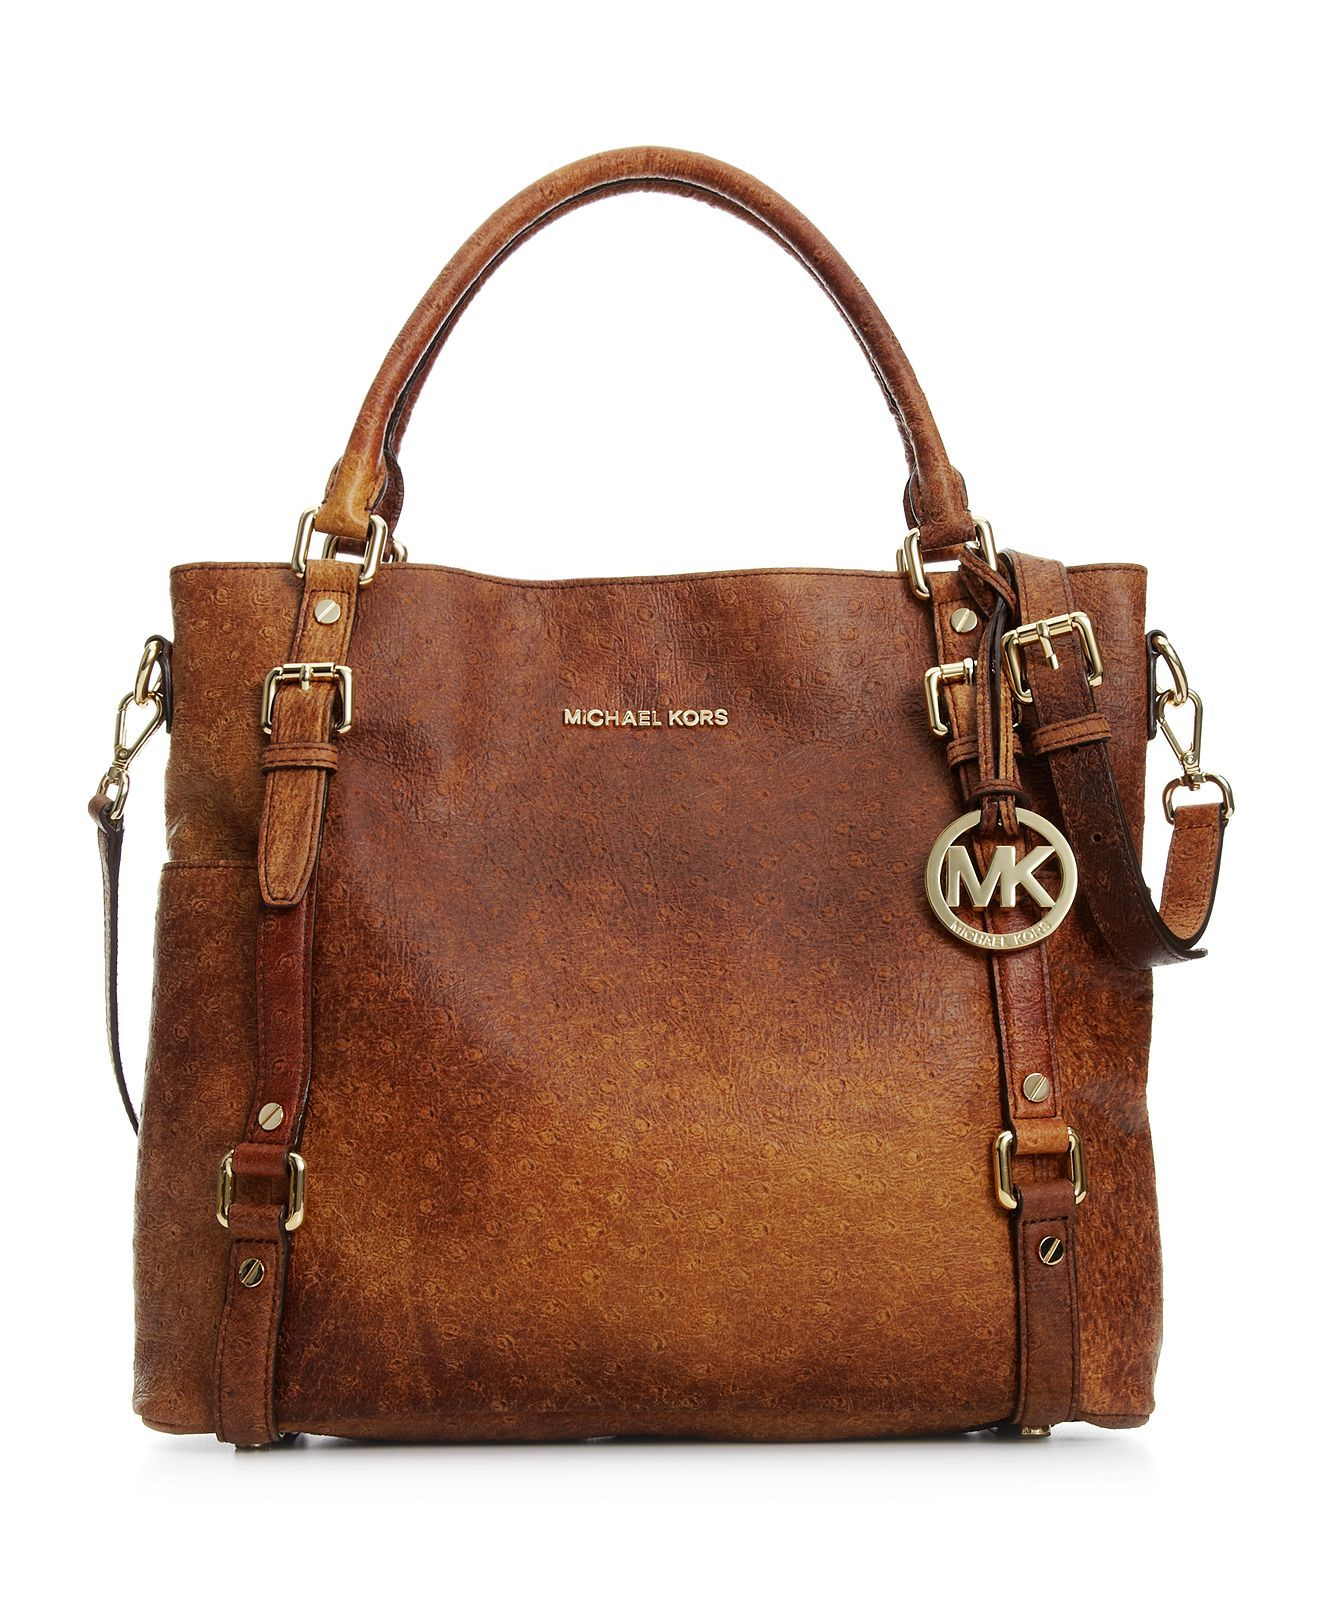 Michael Kors Bedford Ostrich Tote